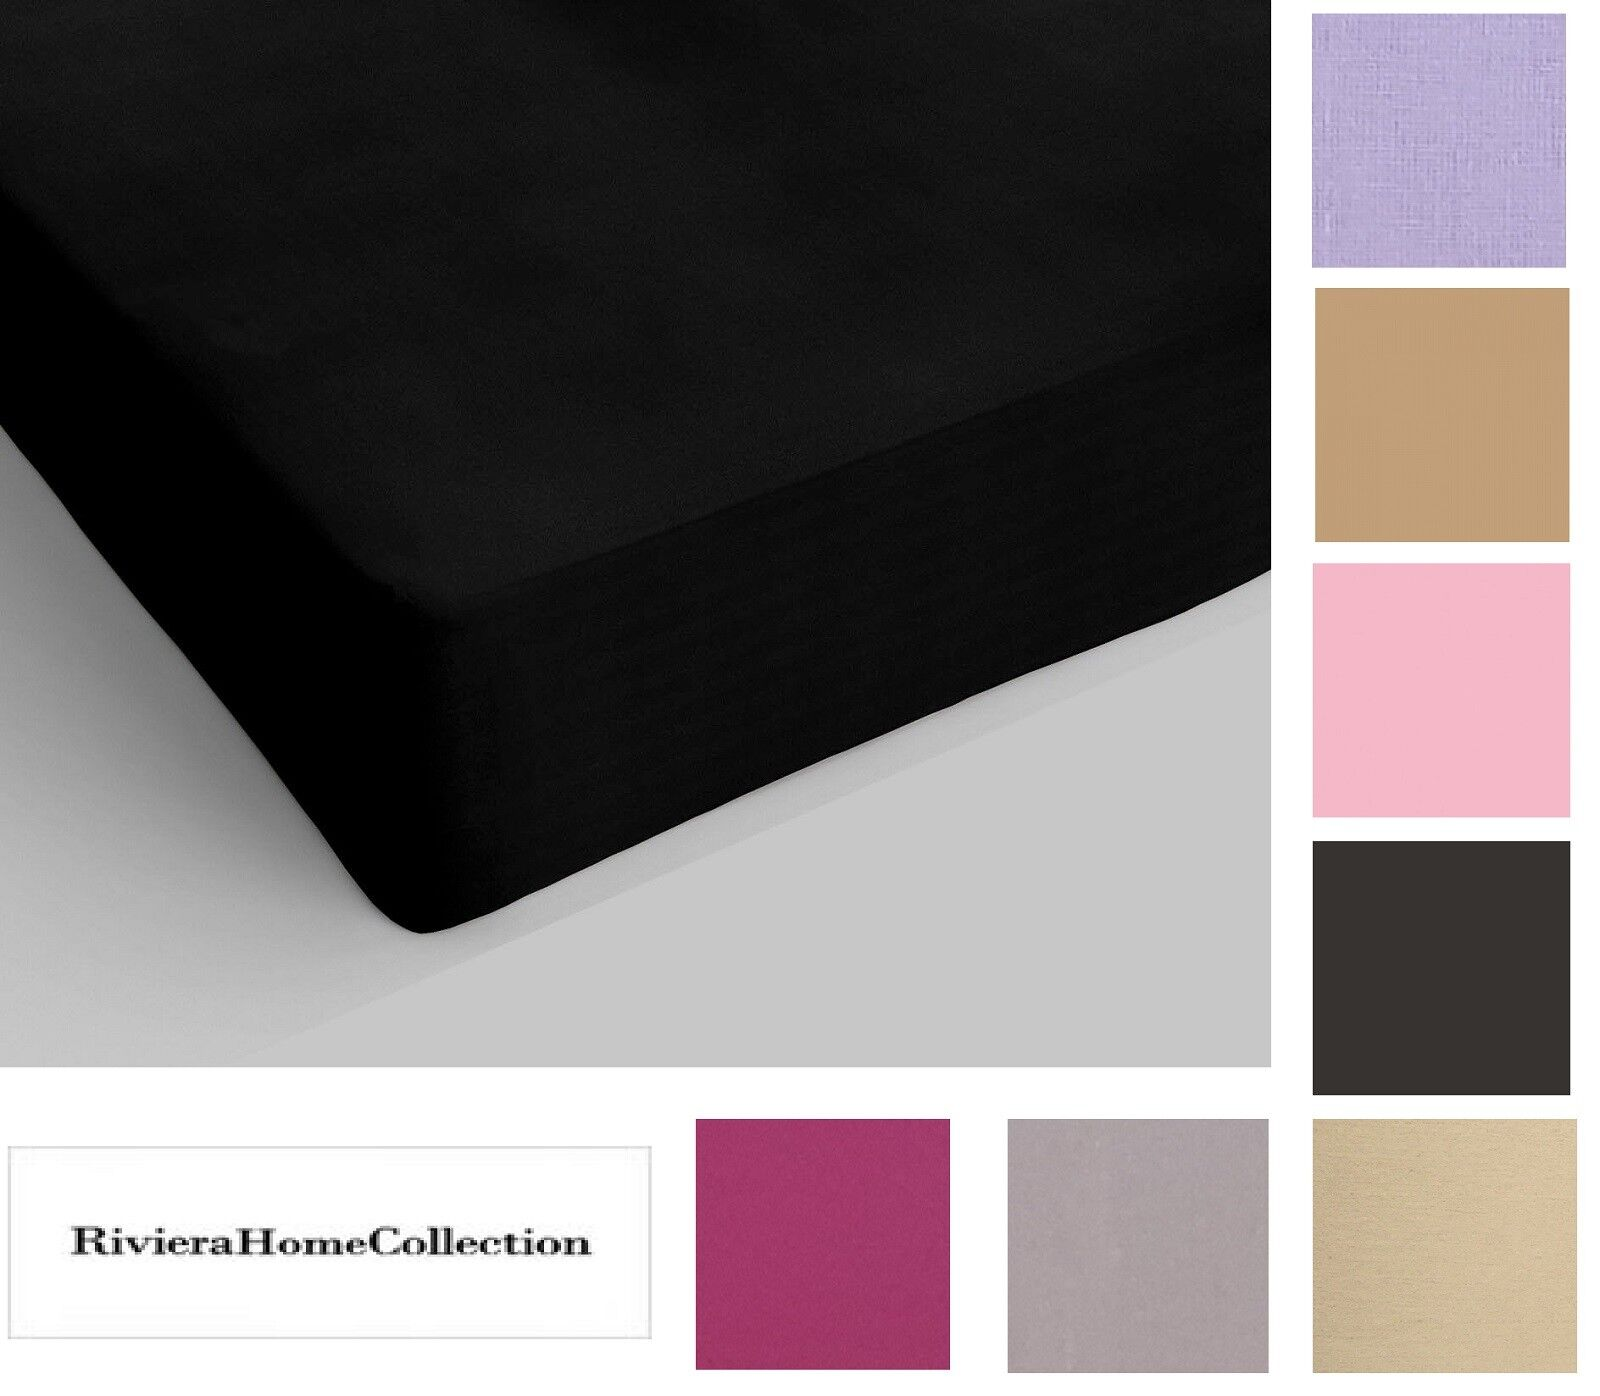 Riviera Home Collection Lenzuola.Riviera Stretched Fitted Sheet With Corners 100 Cotton Single 1 Square Ebay